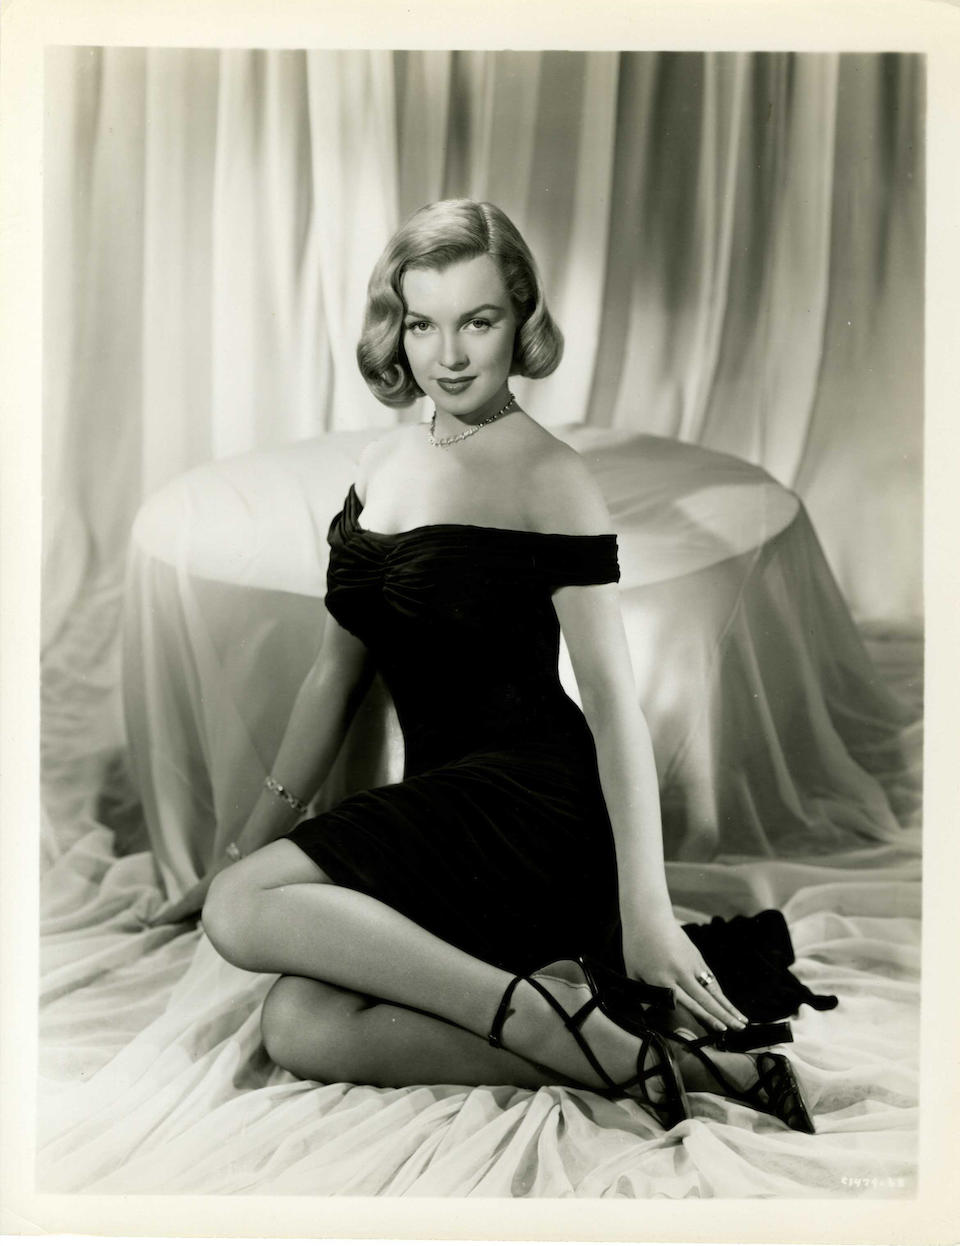 A collection of approximately one hundred Marilyn Monroe related stills, black and white stills, approx 100